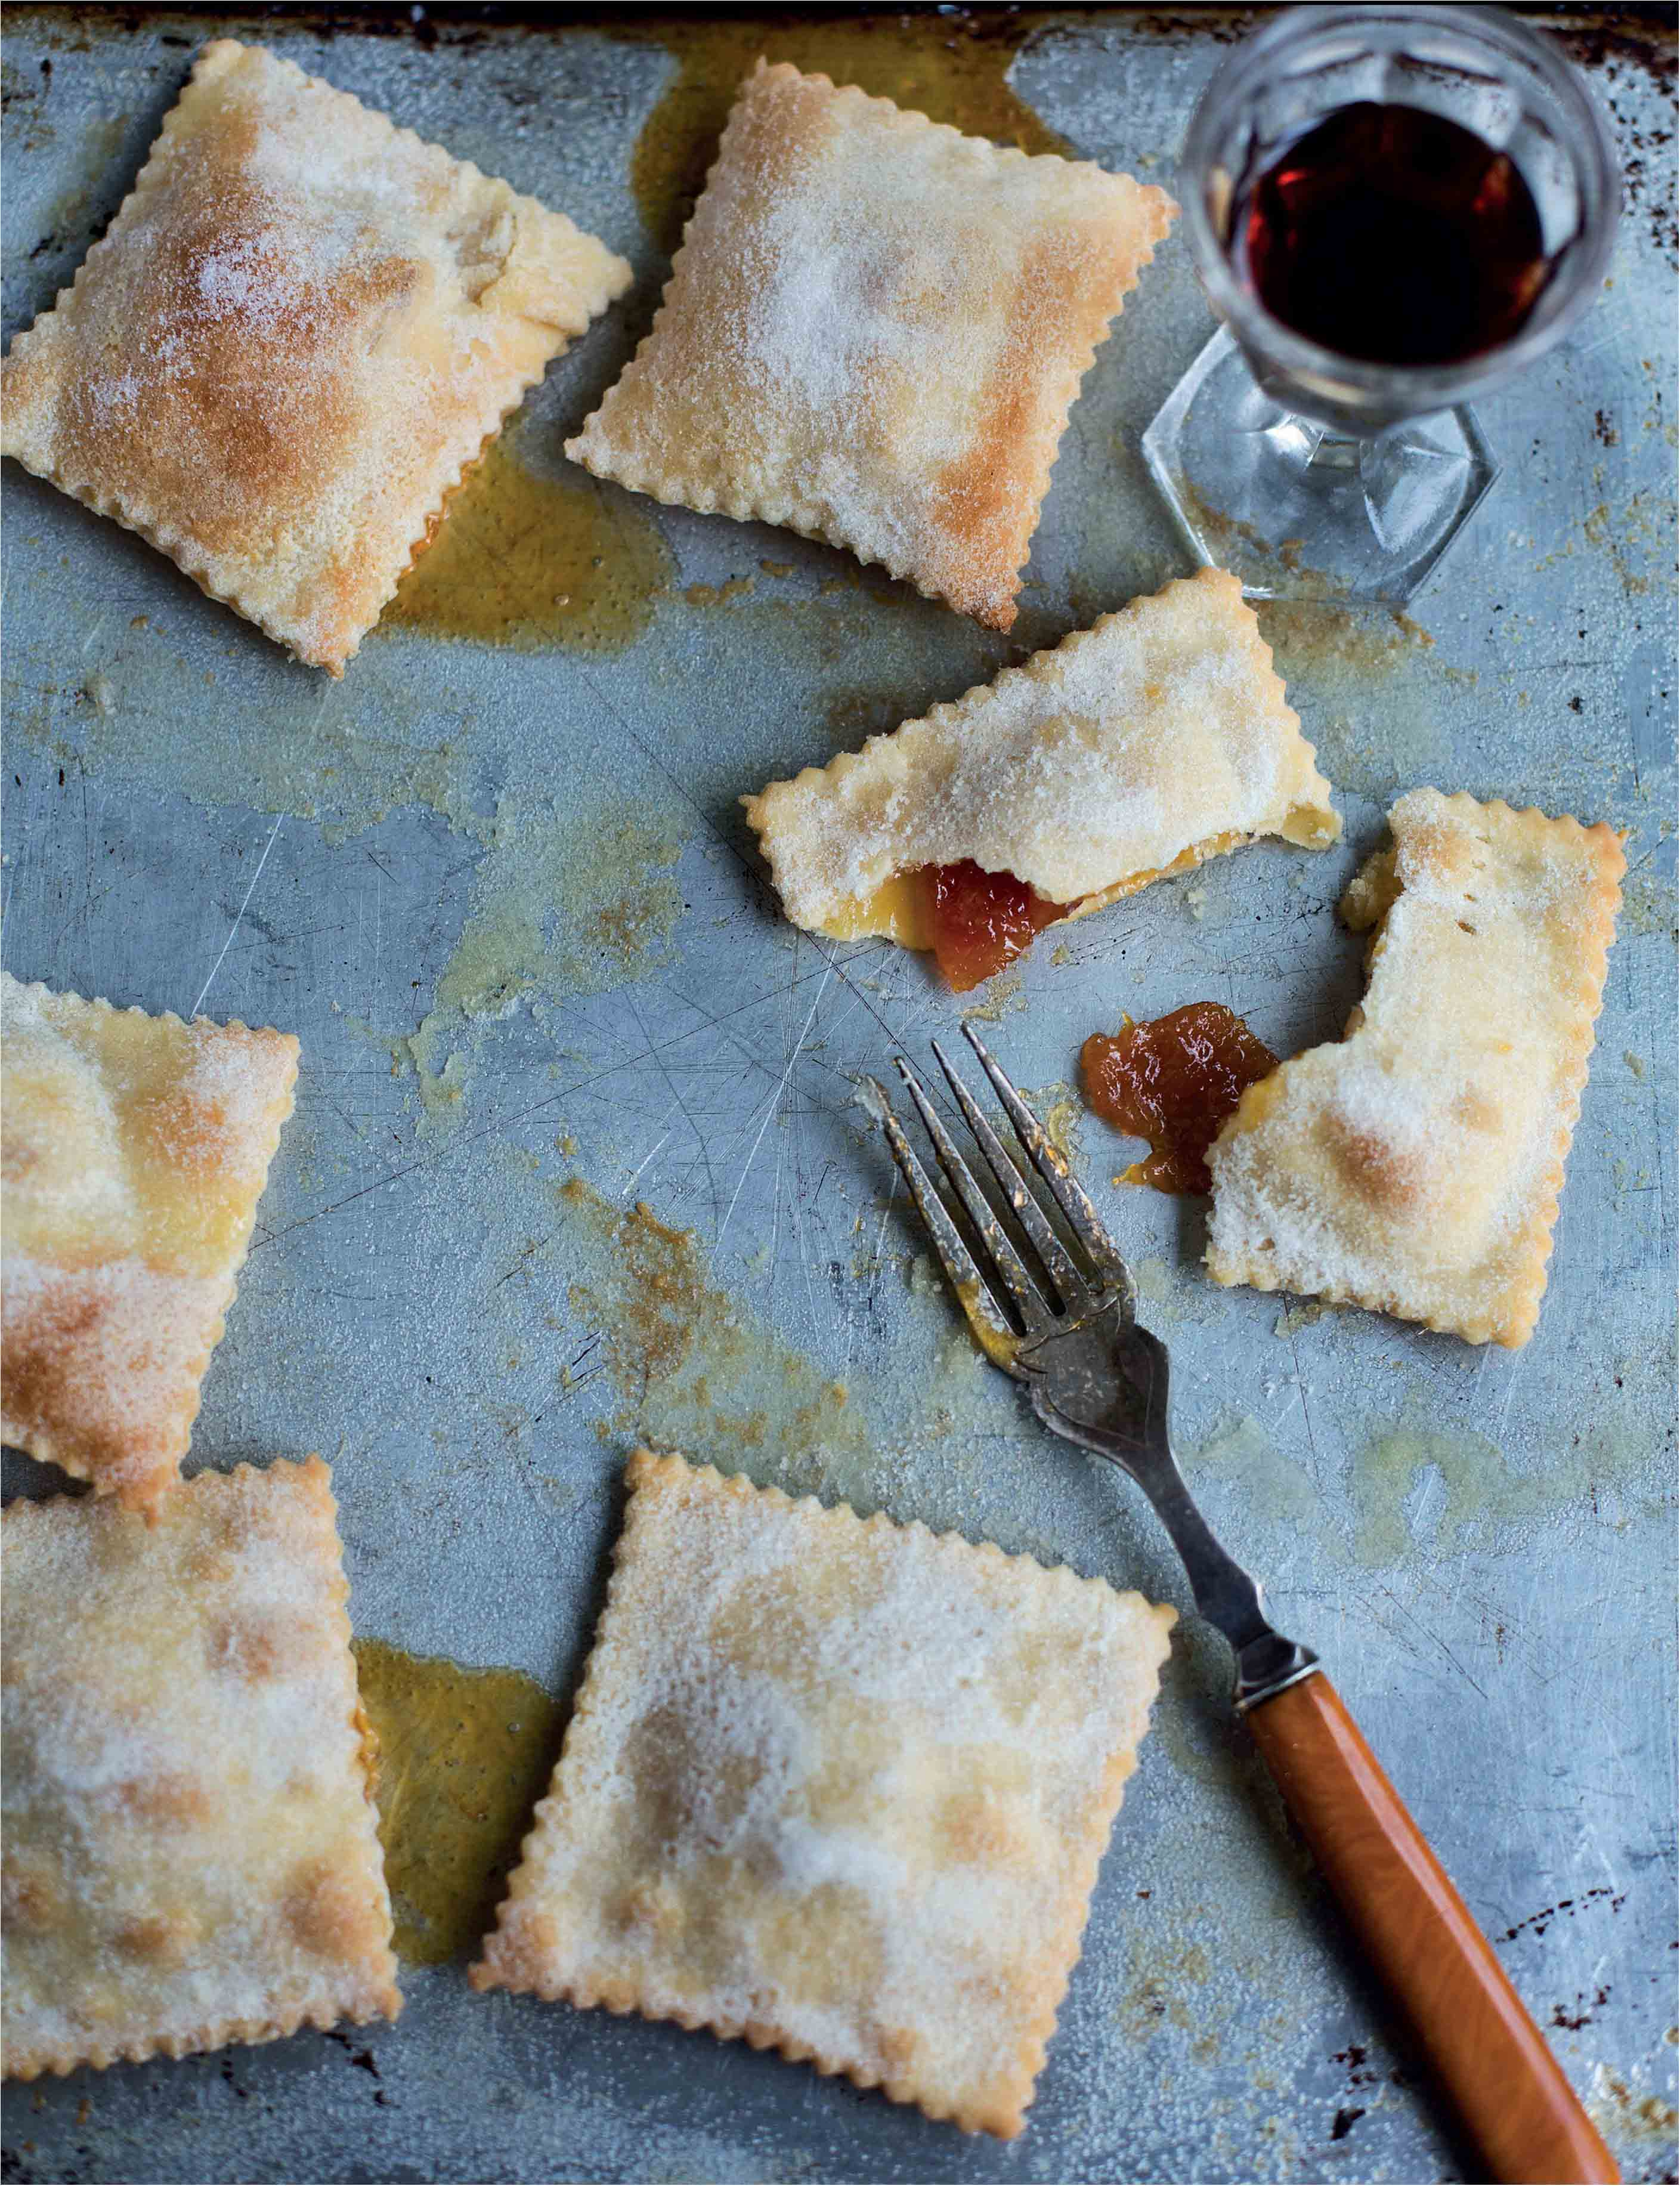 Baked pastry squares stuffed with jam